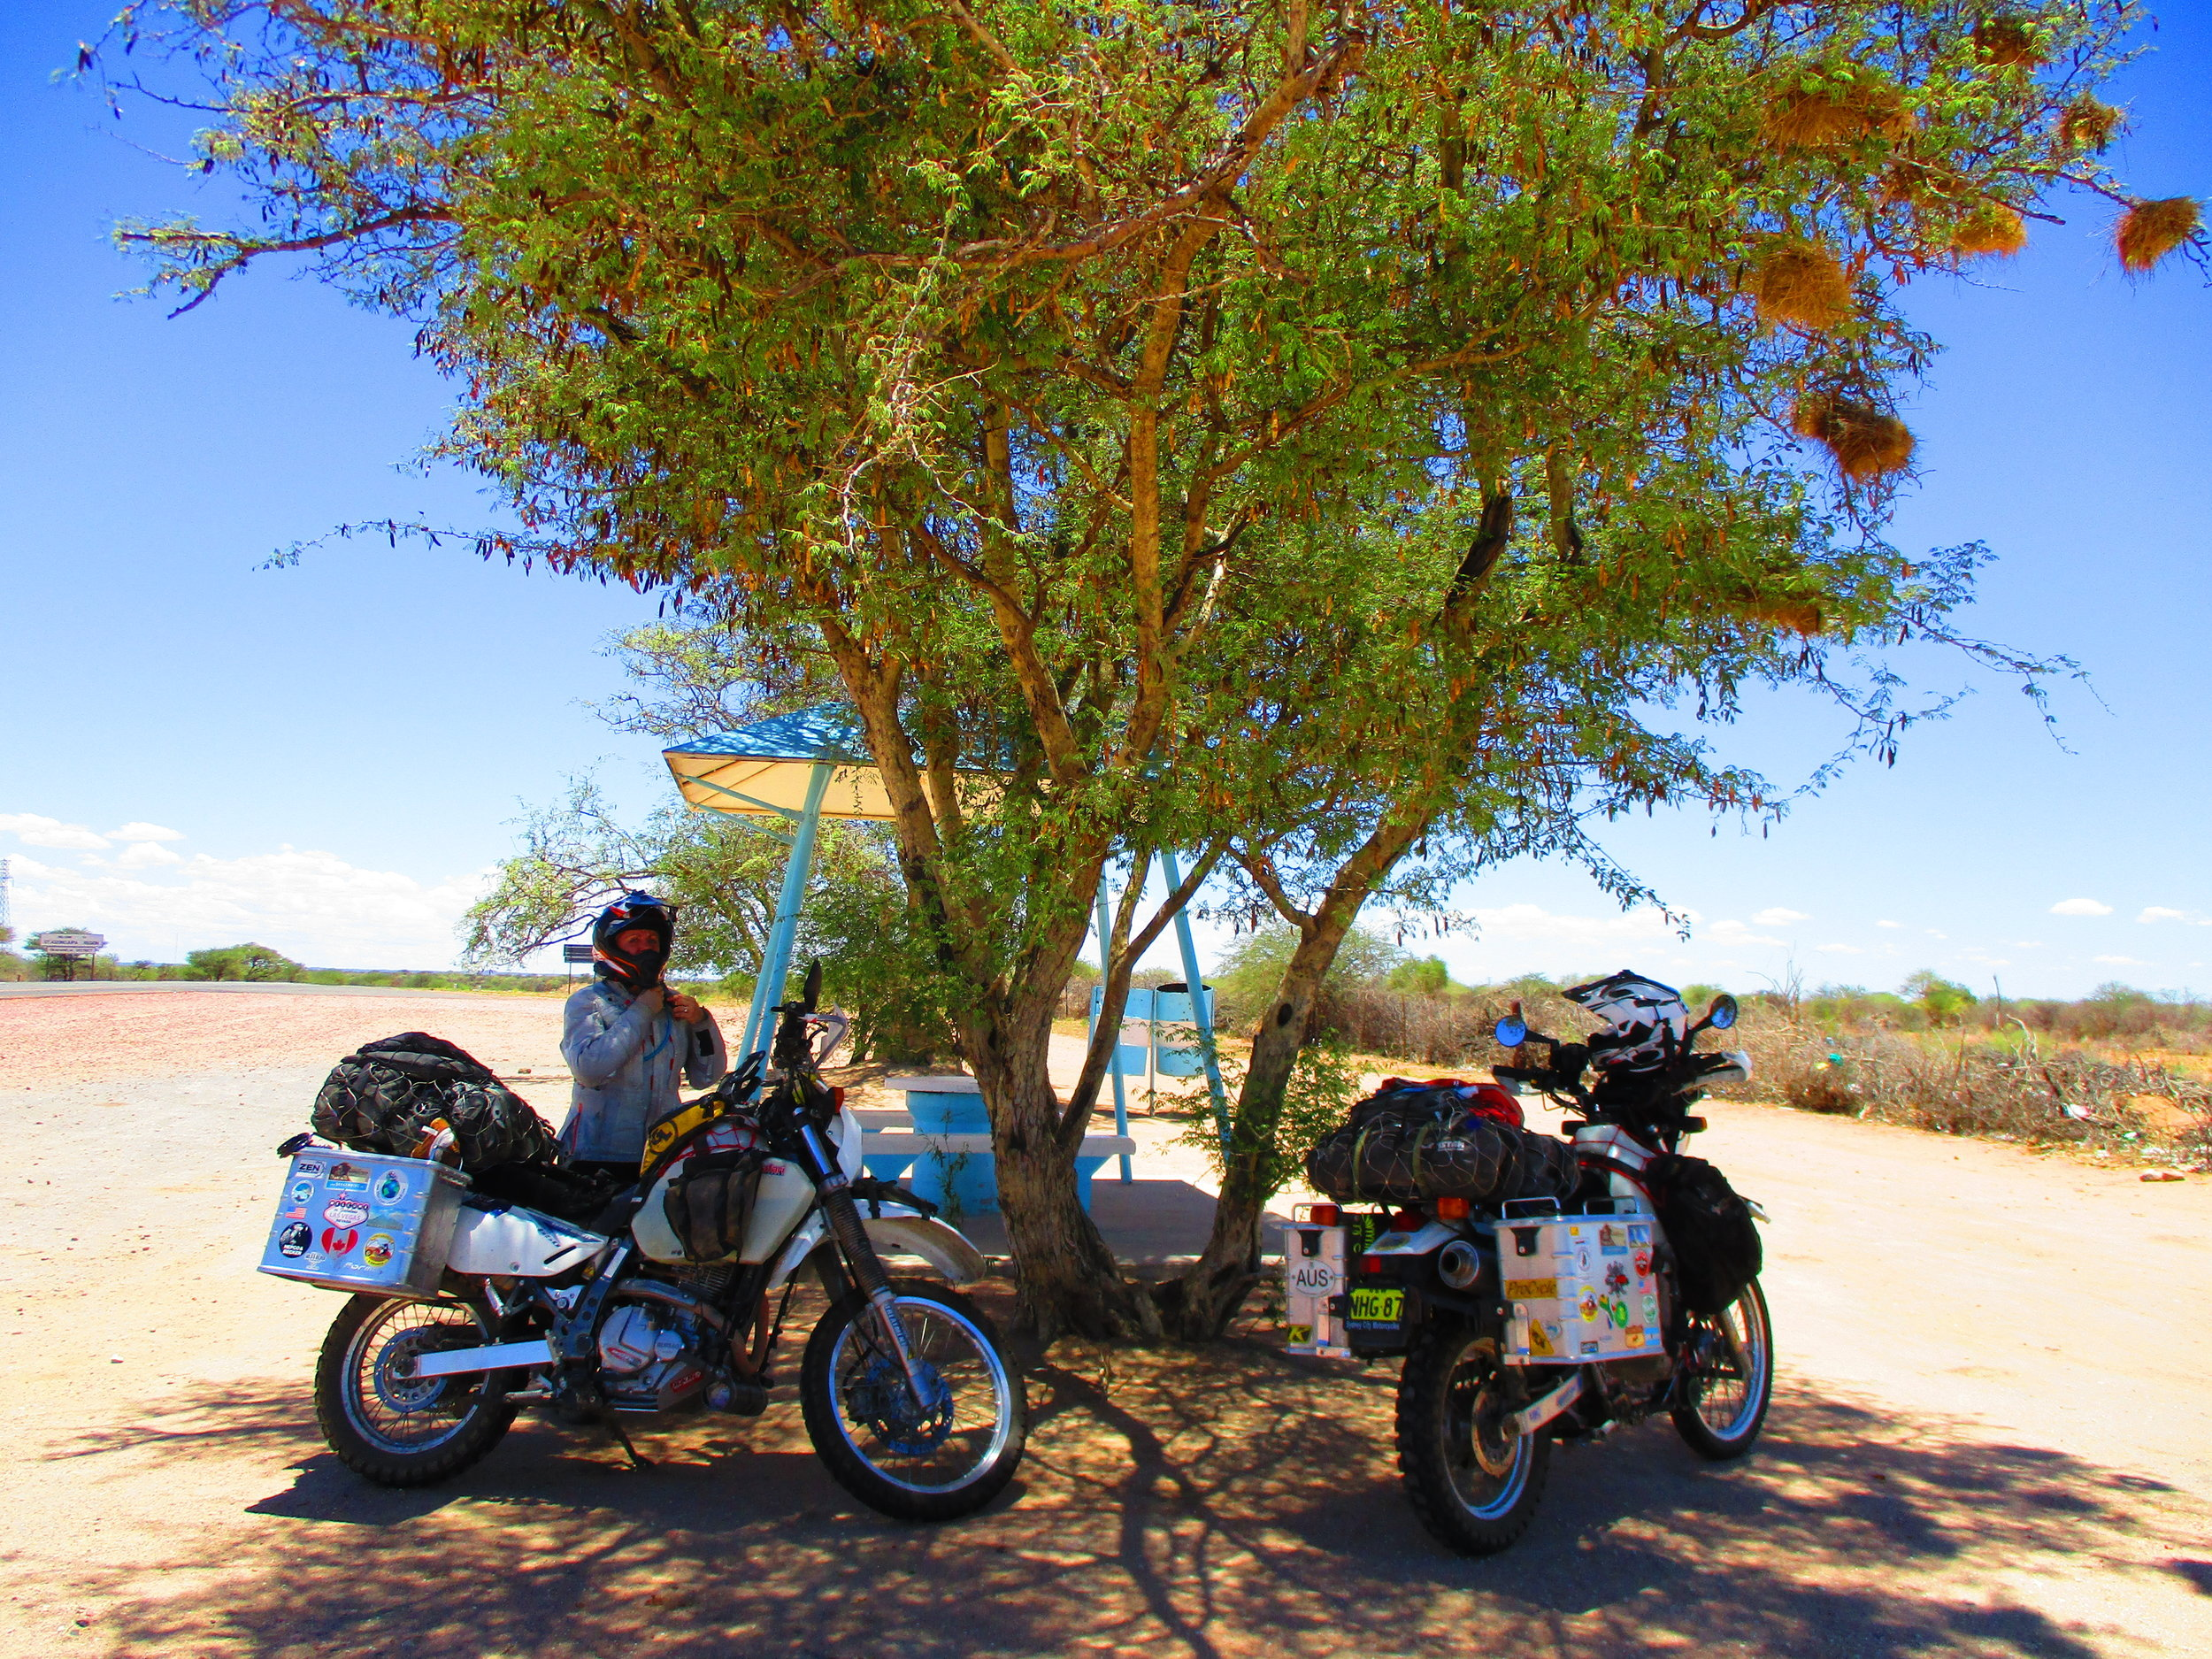 One of the roadside rest stops in Namibia